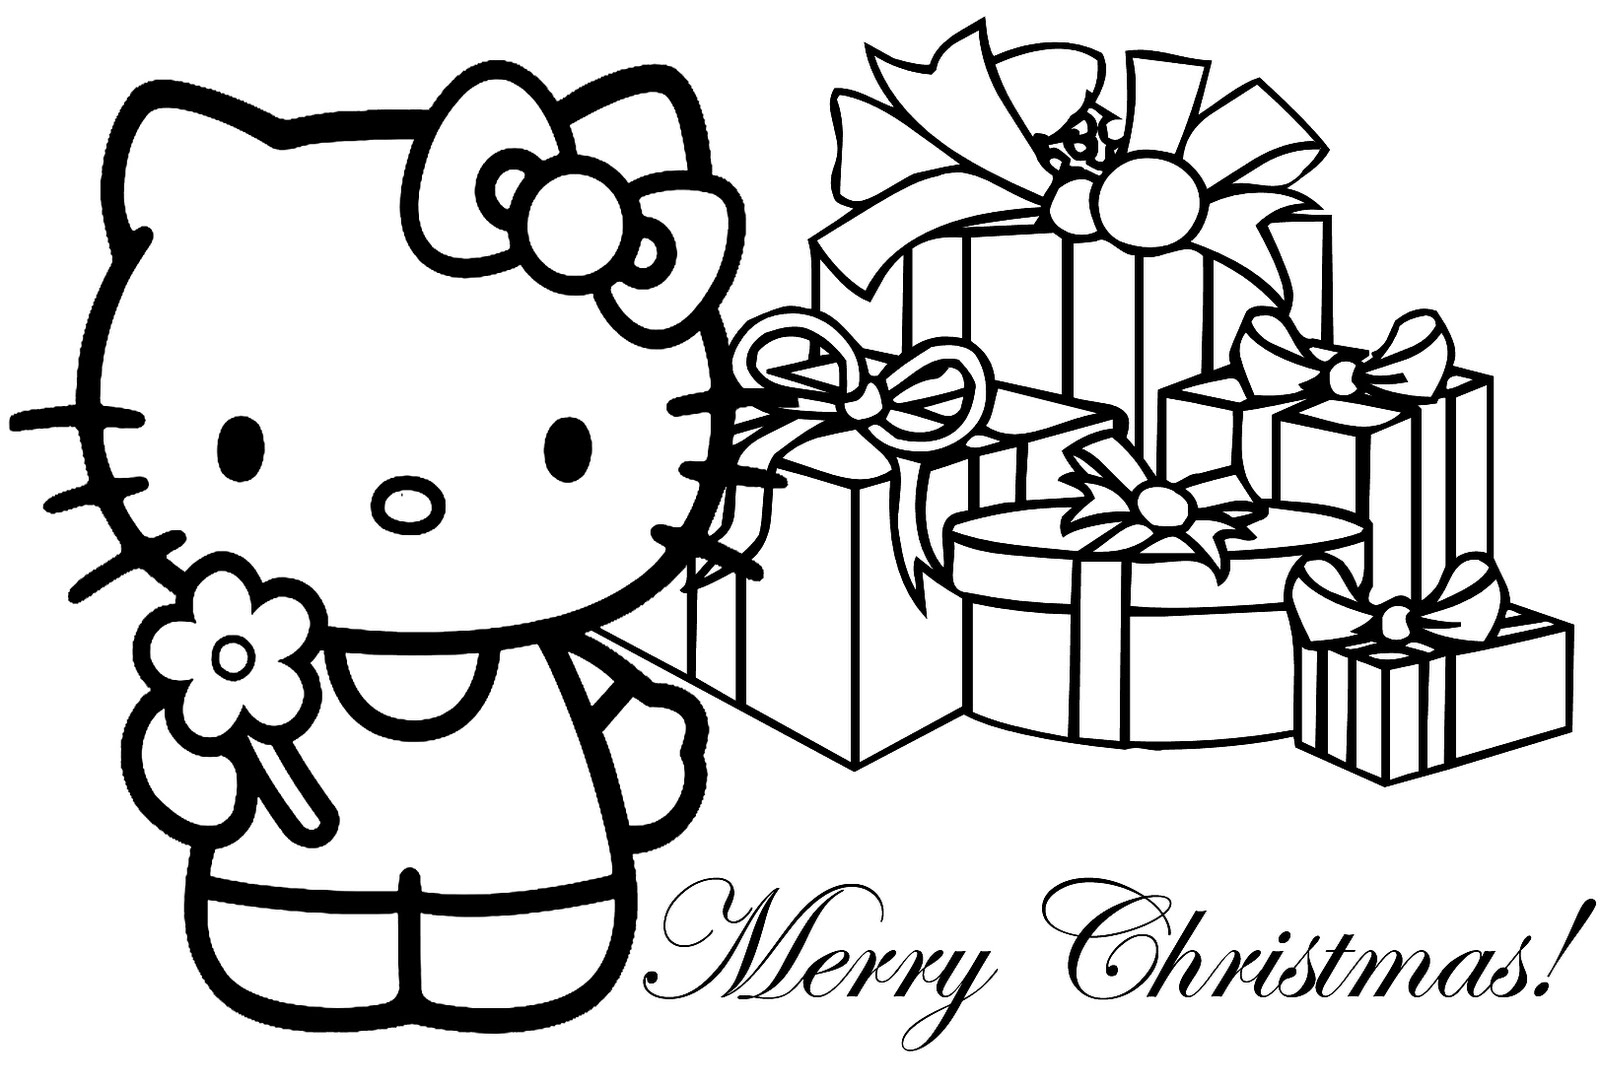 free holiday coloring pages free printable merry christmas coloring pages holiday coloring pages free